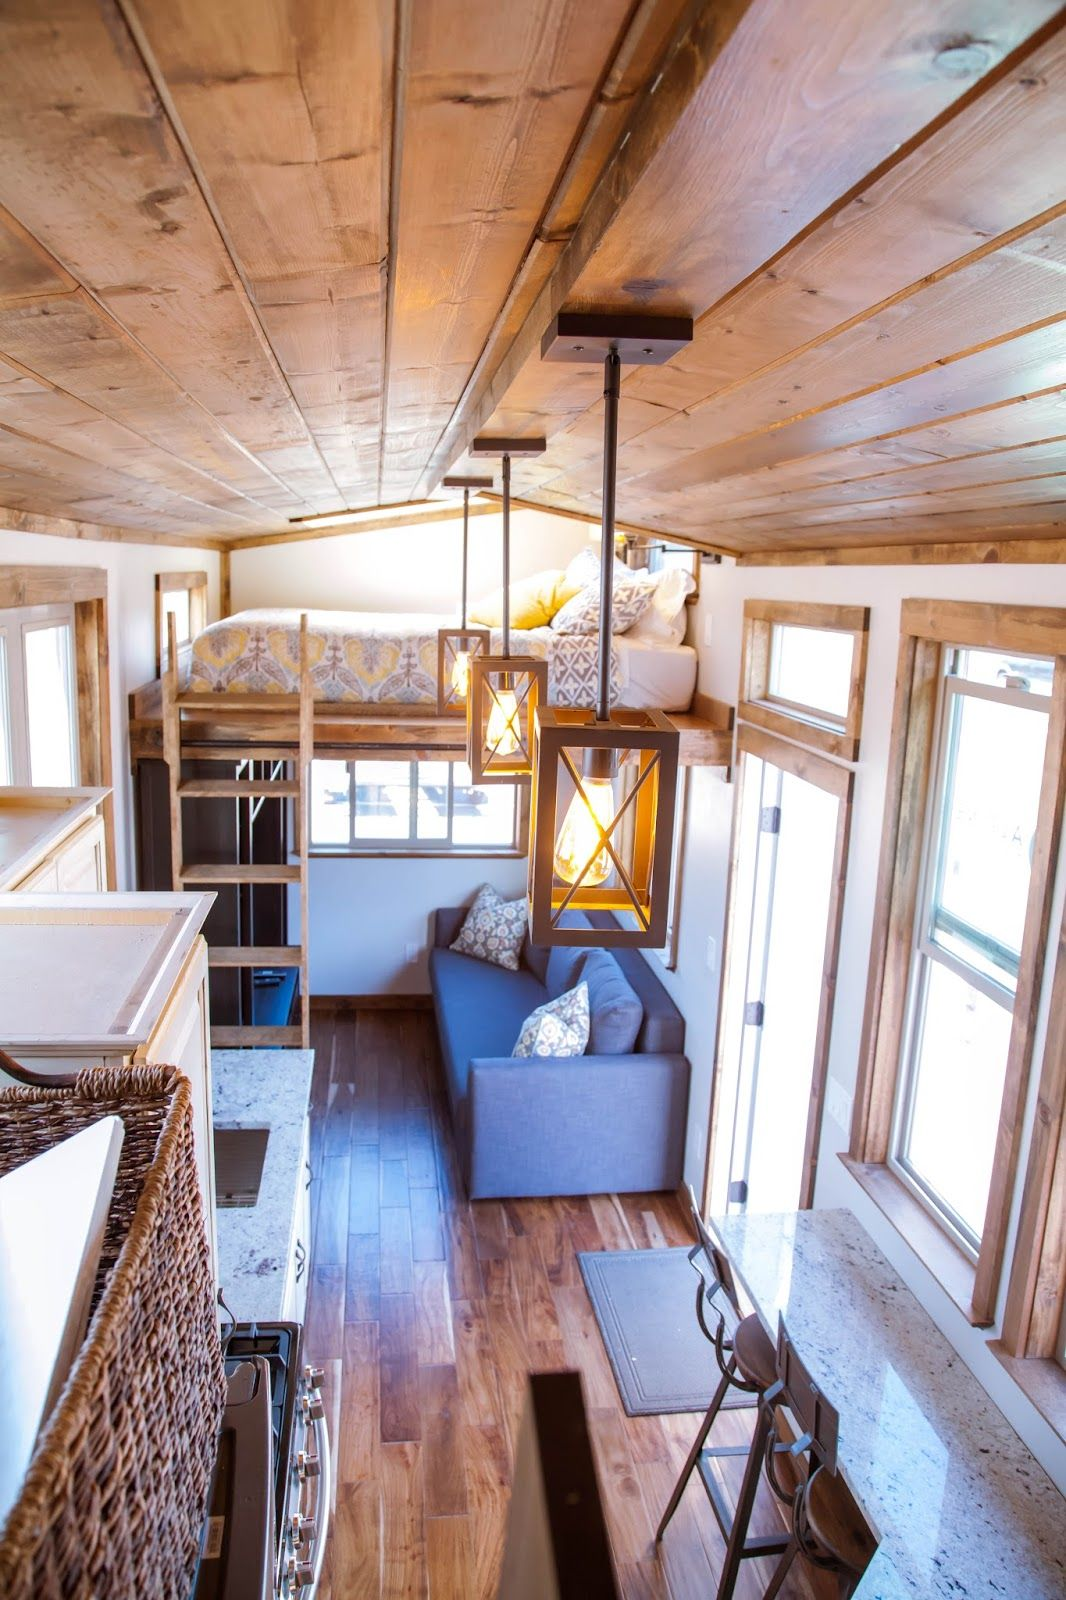 The Teton from Alpine Tiny Homes a stunning tiny house on wheels